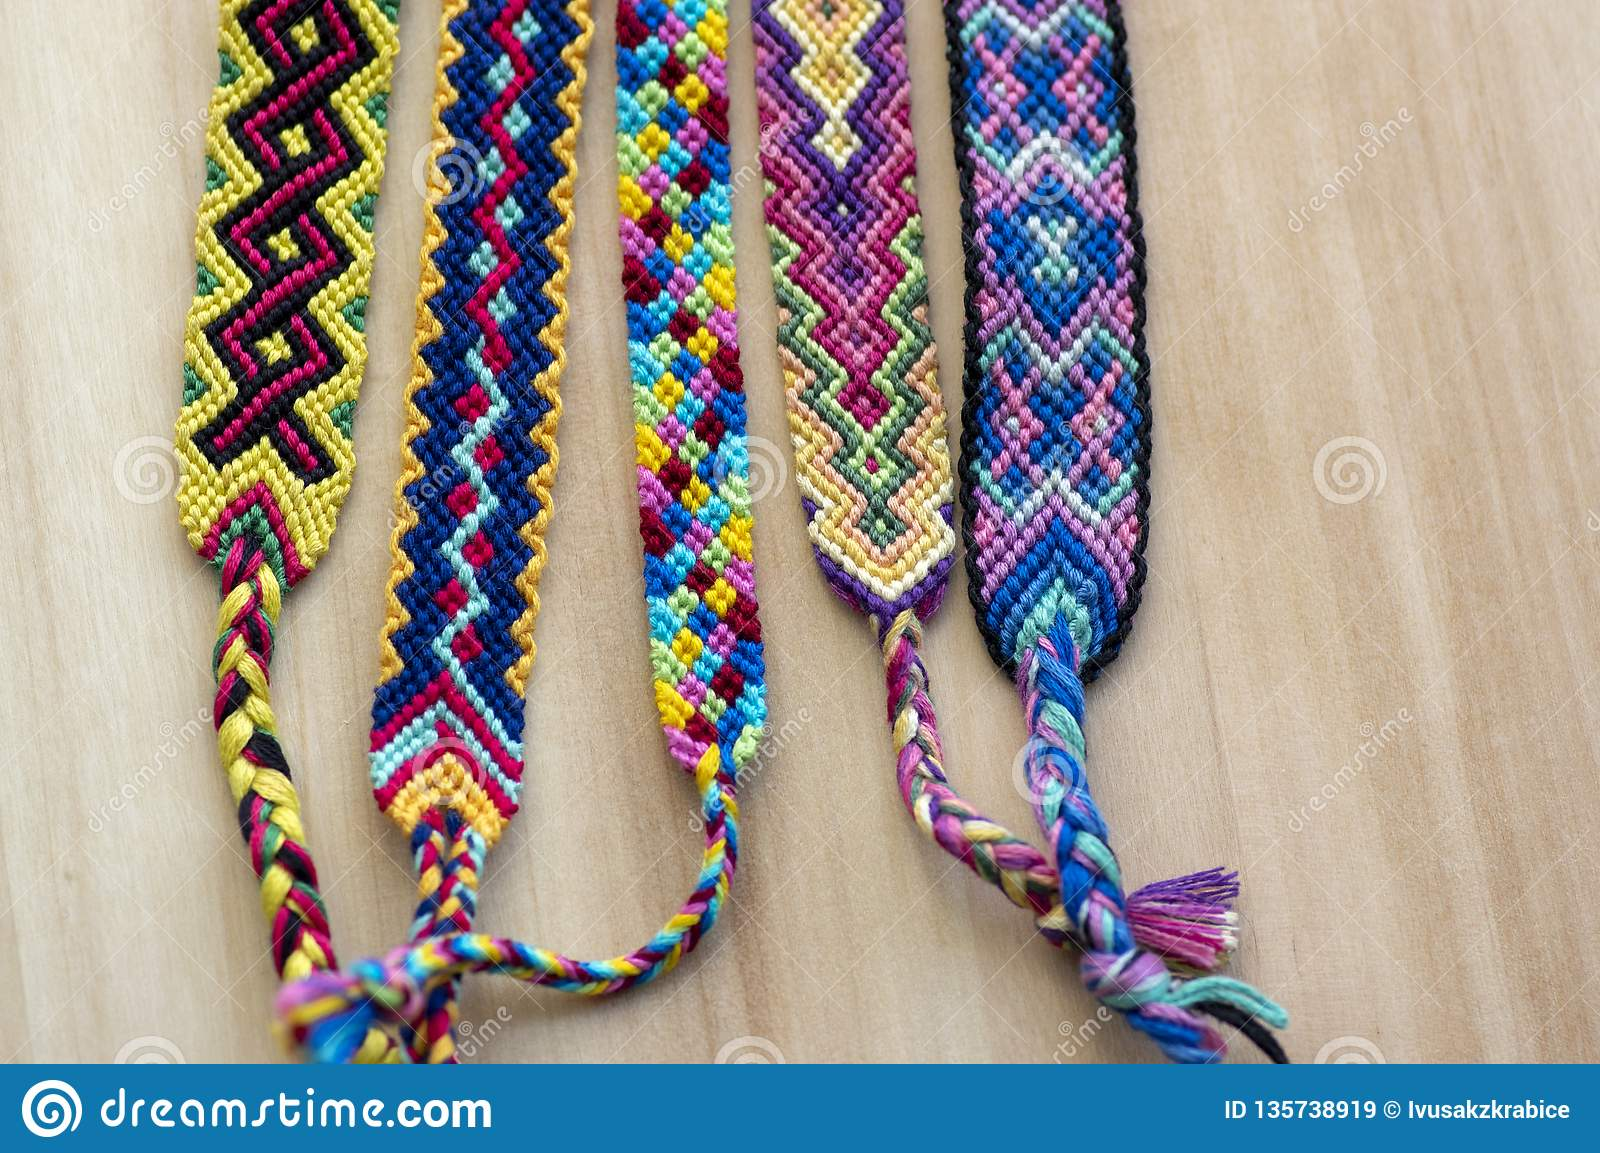 5299a7014c1 Five handmade homemade colorful natural woven bracelets of friendship on  wooden board